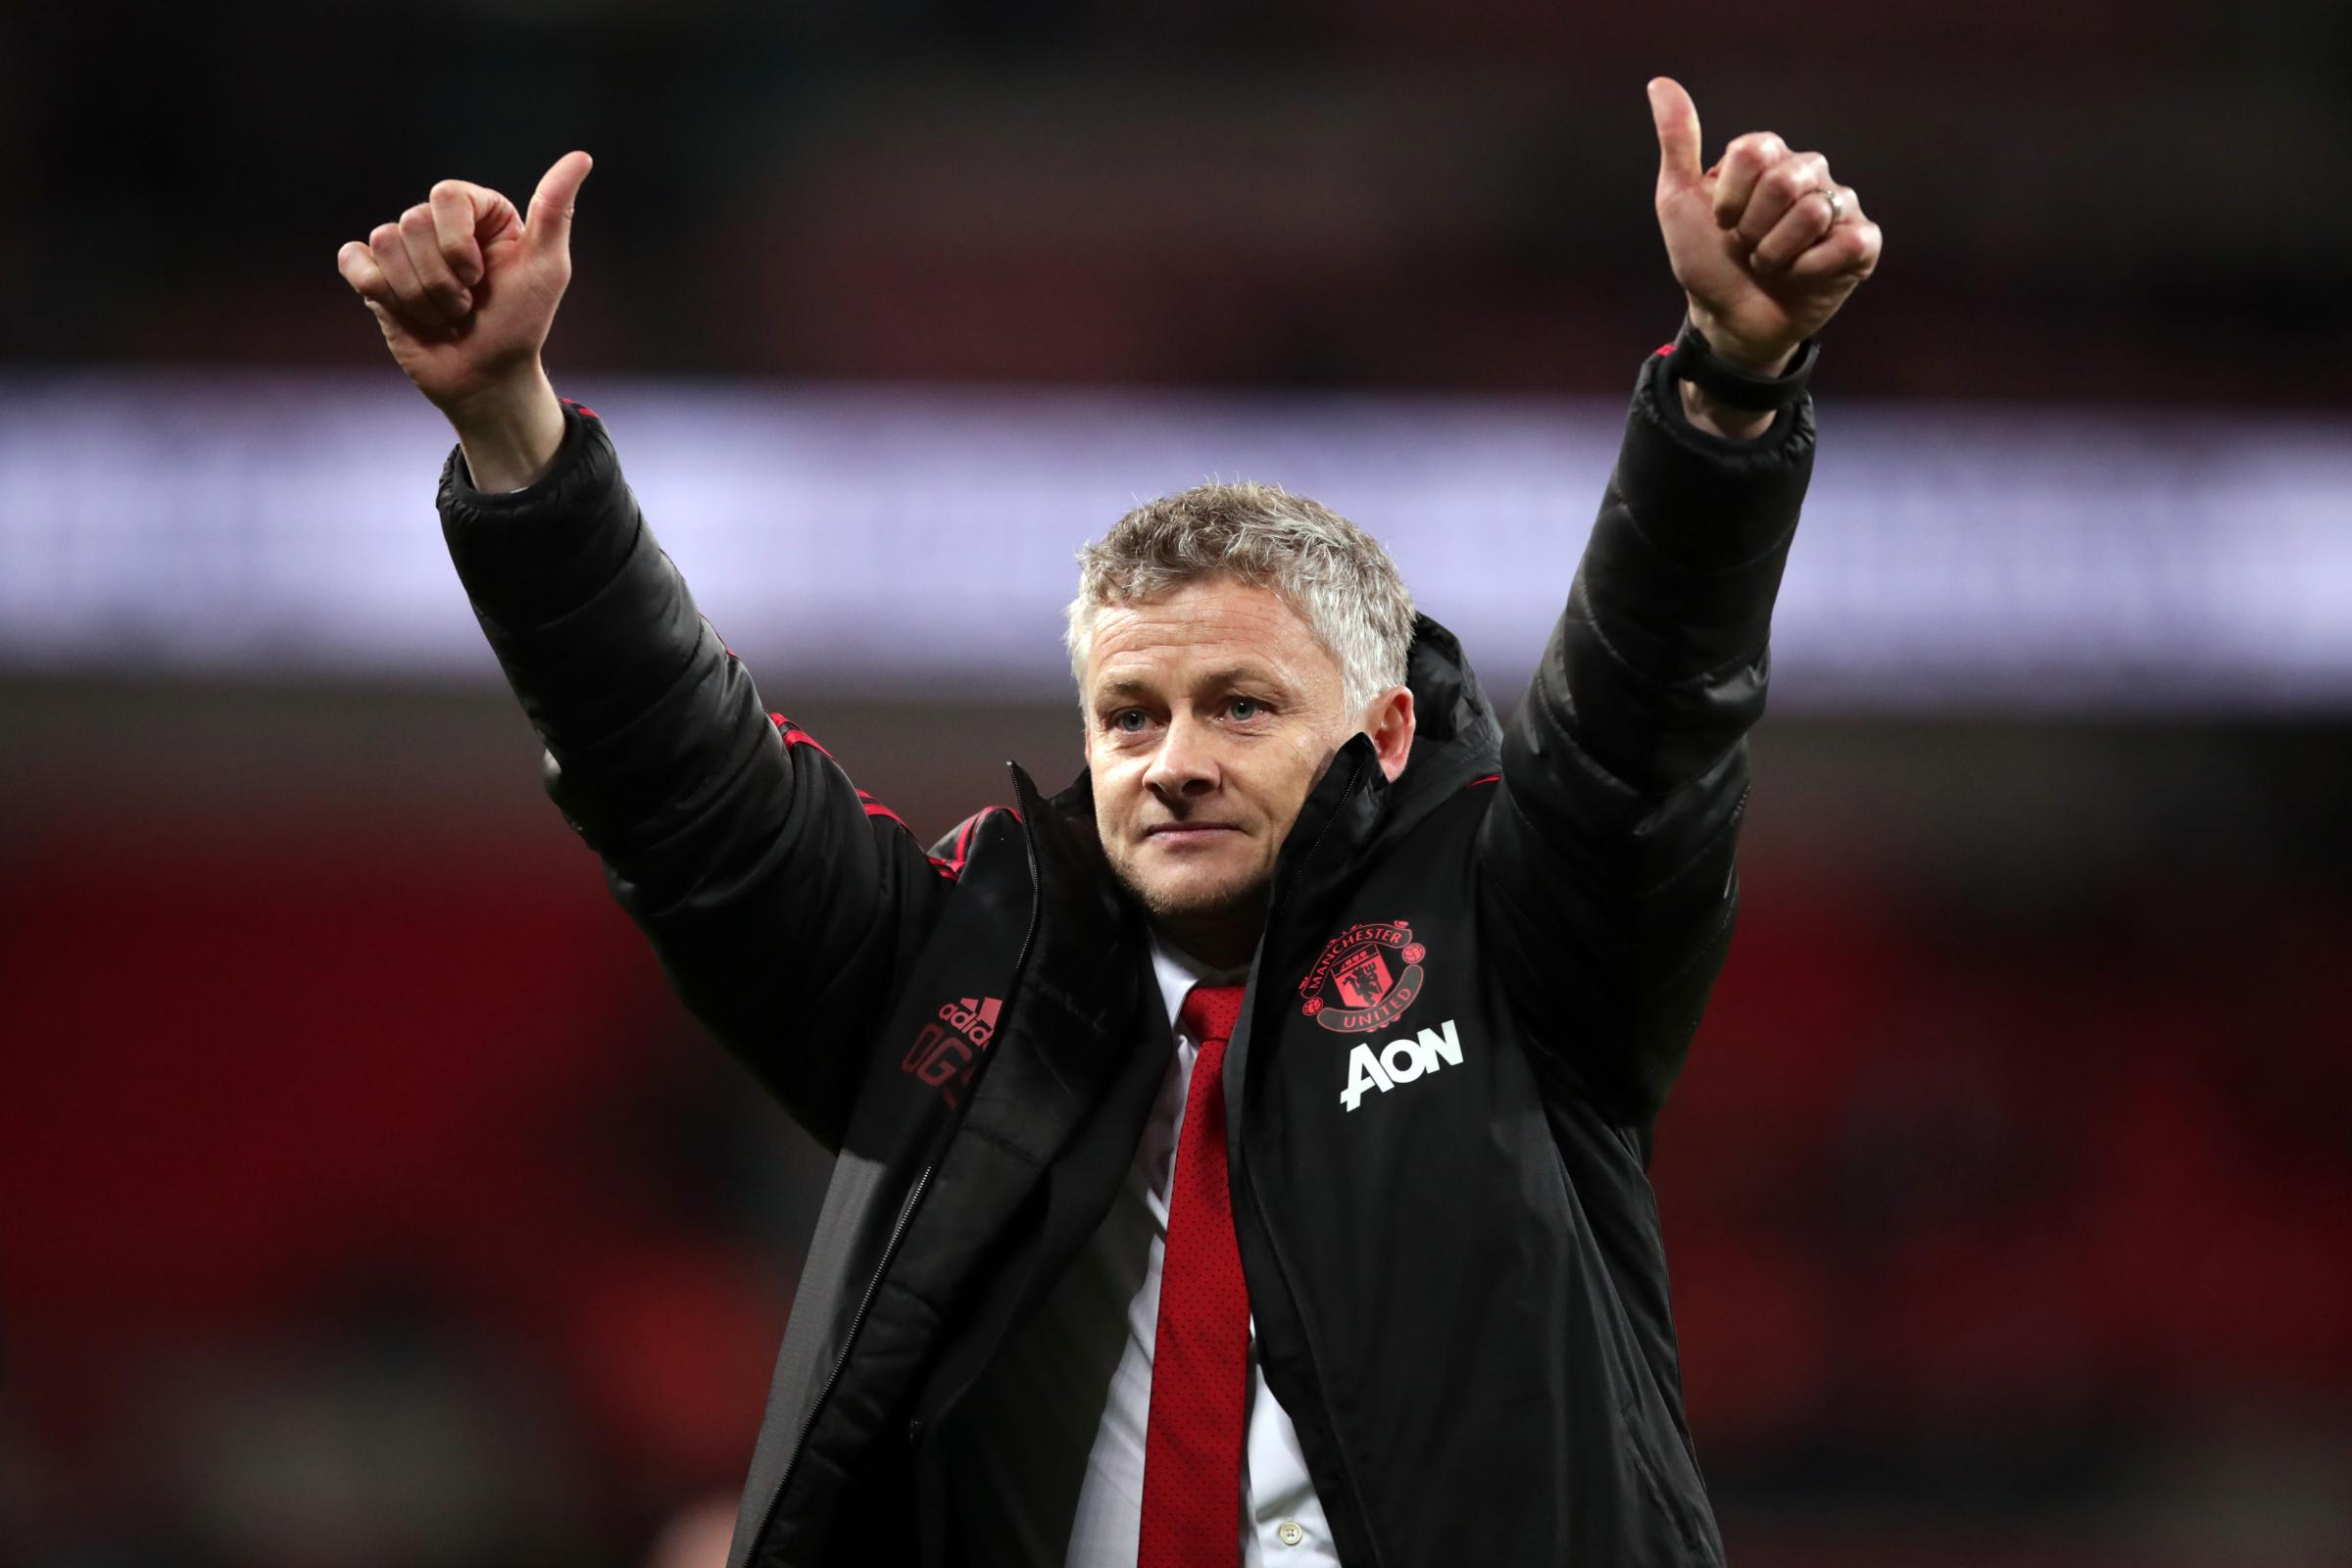 Ole Gunnar Solskjaer maintained his 100 per cent record in charge at Old Trafford